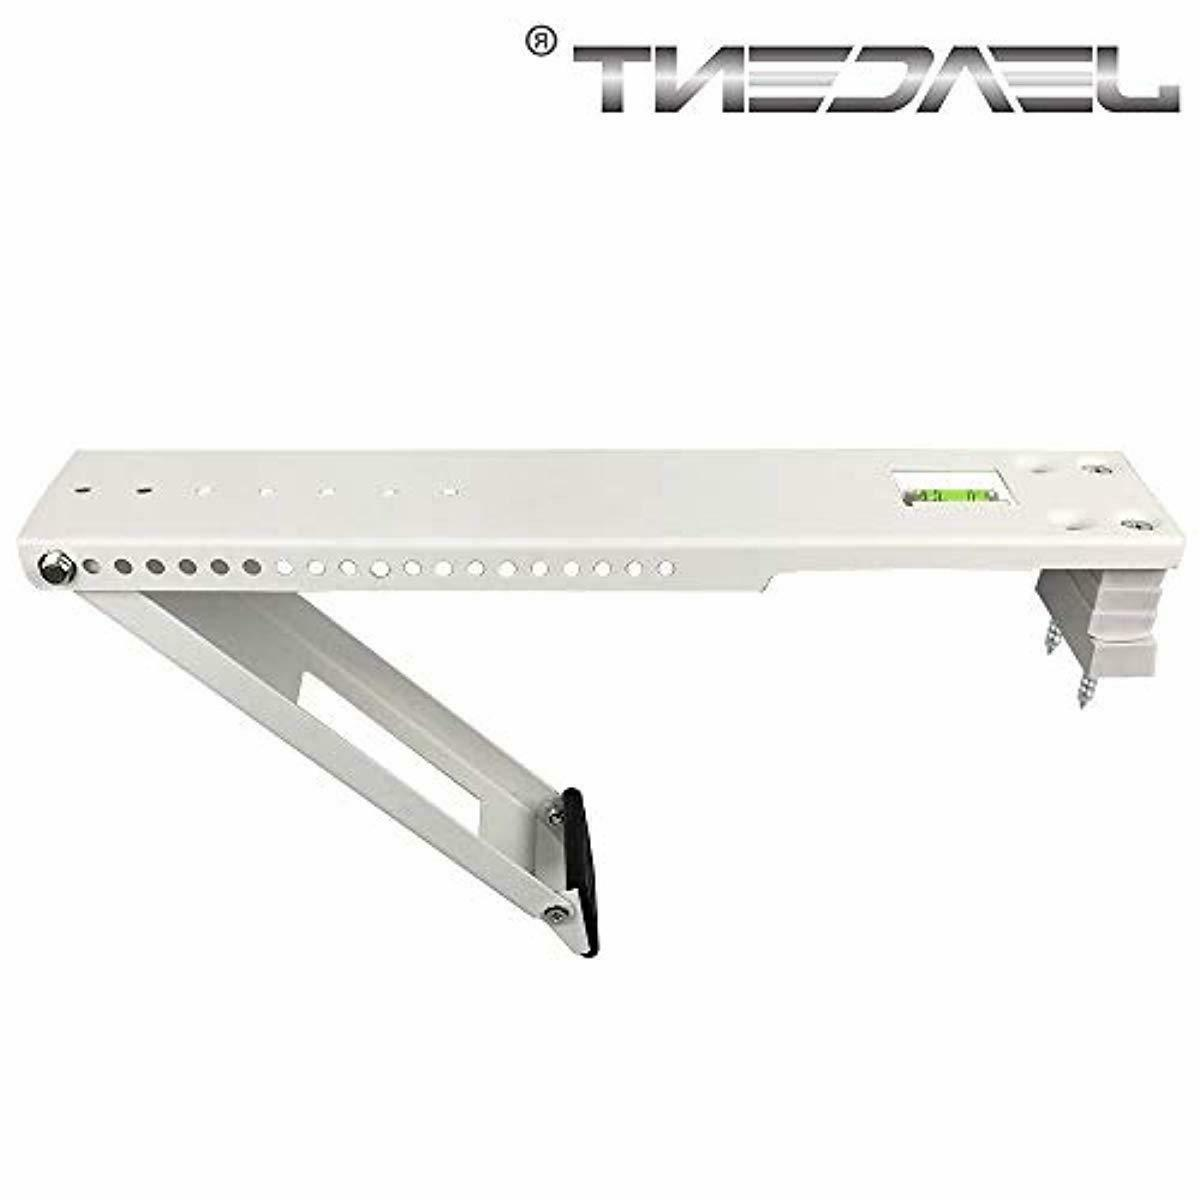 jeacent universal ac window air conditioner support